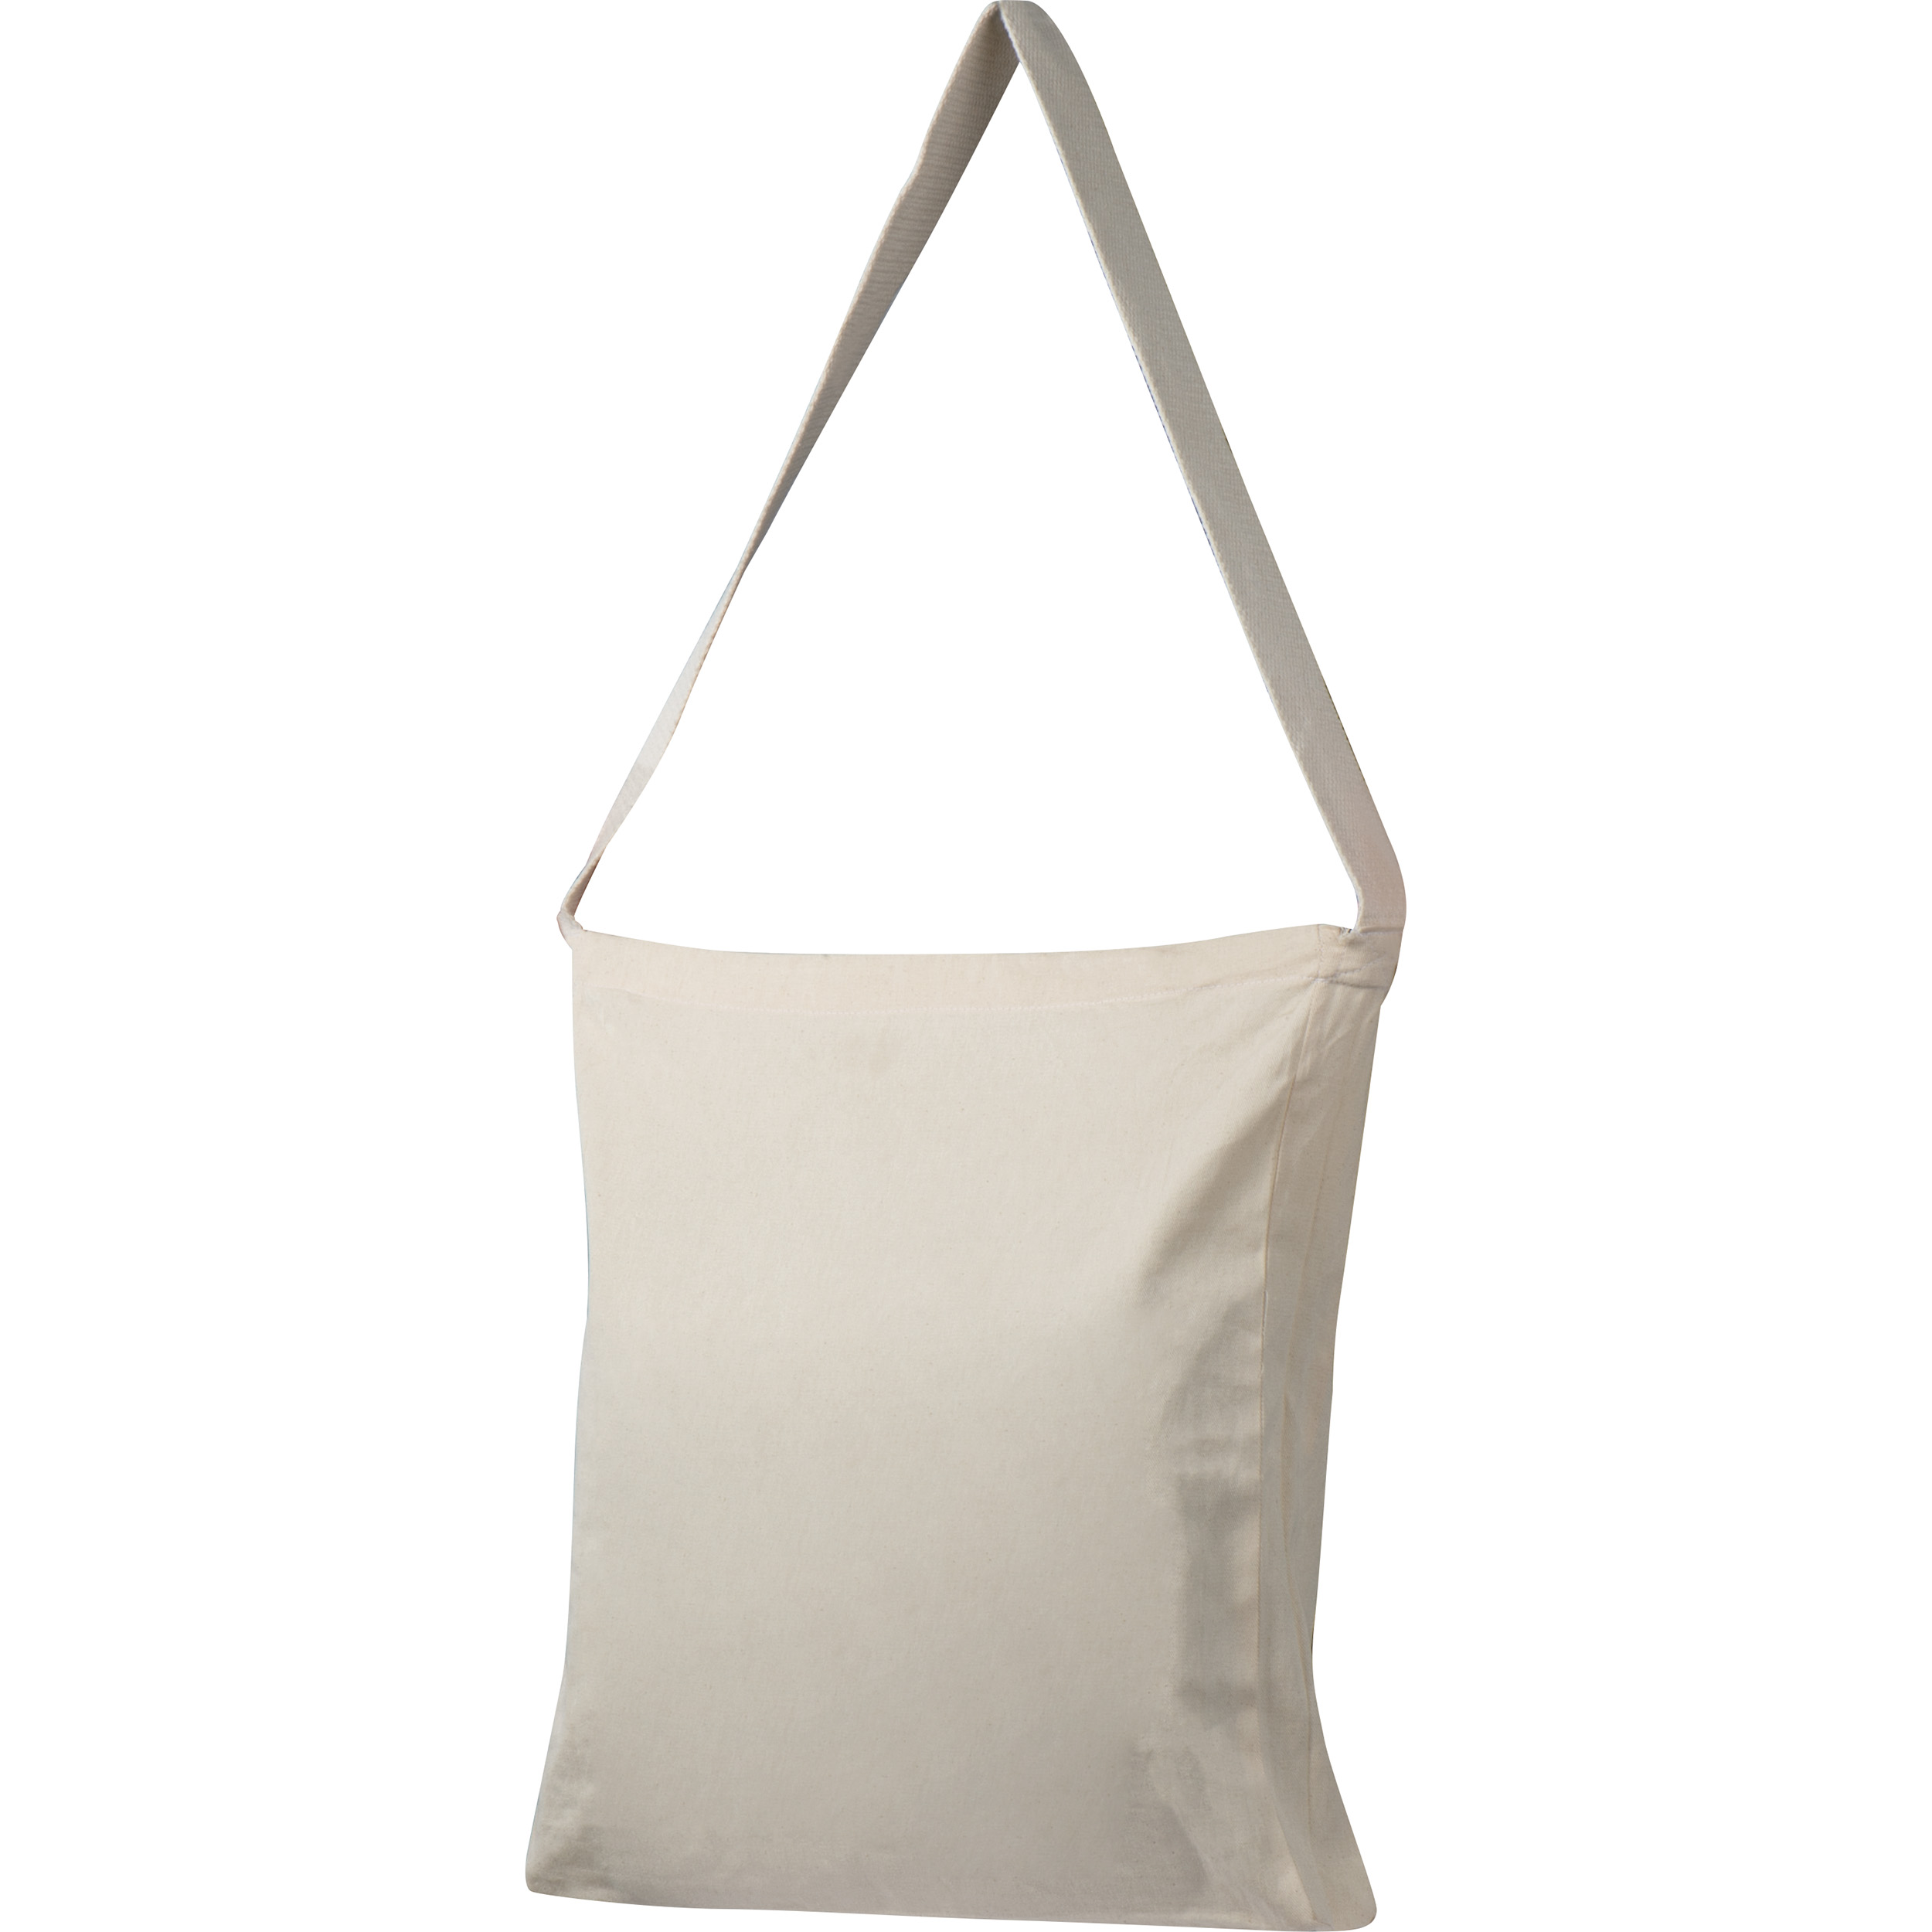 Cotton bag with woven carrying handle and bottom fold